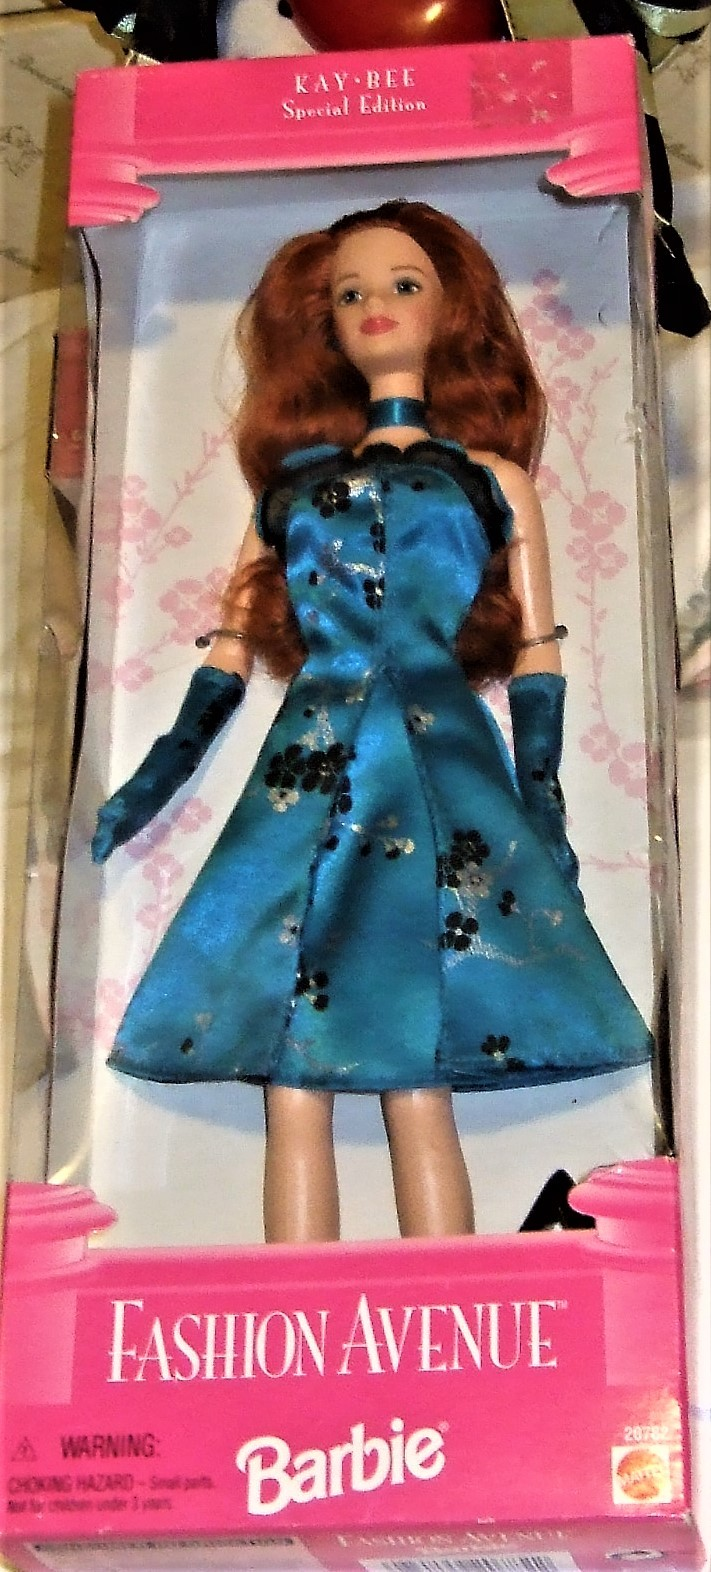 Barbie Doll - FASHION AVENUE Kay-Bee Special Ed (1998) Long Red Hair image 5